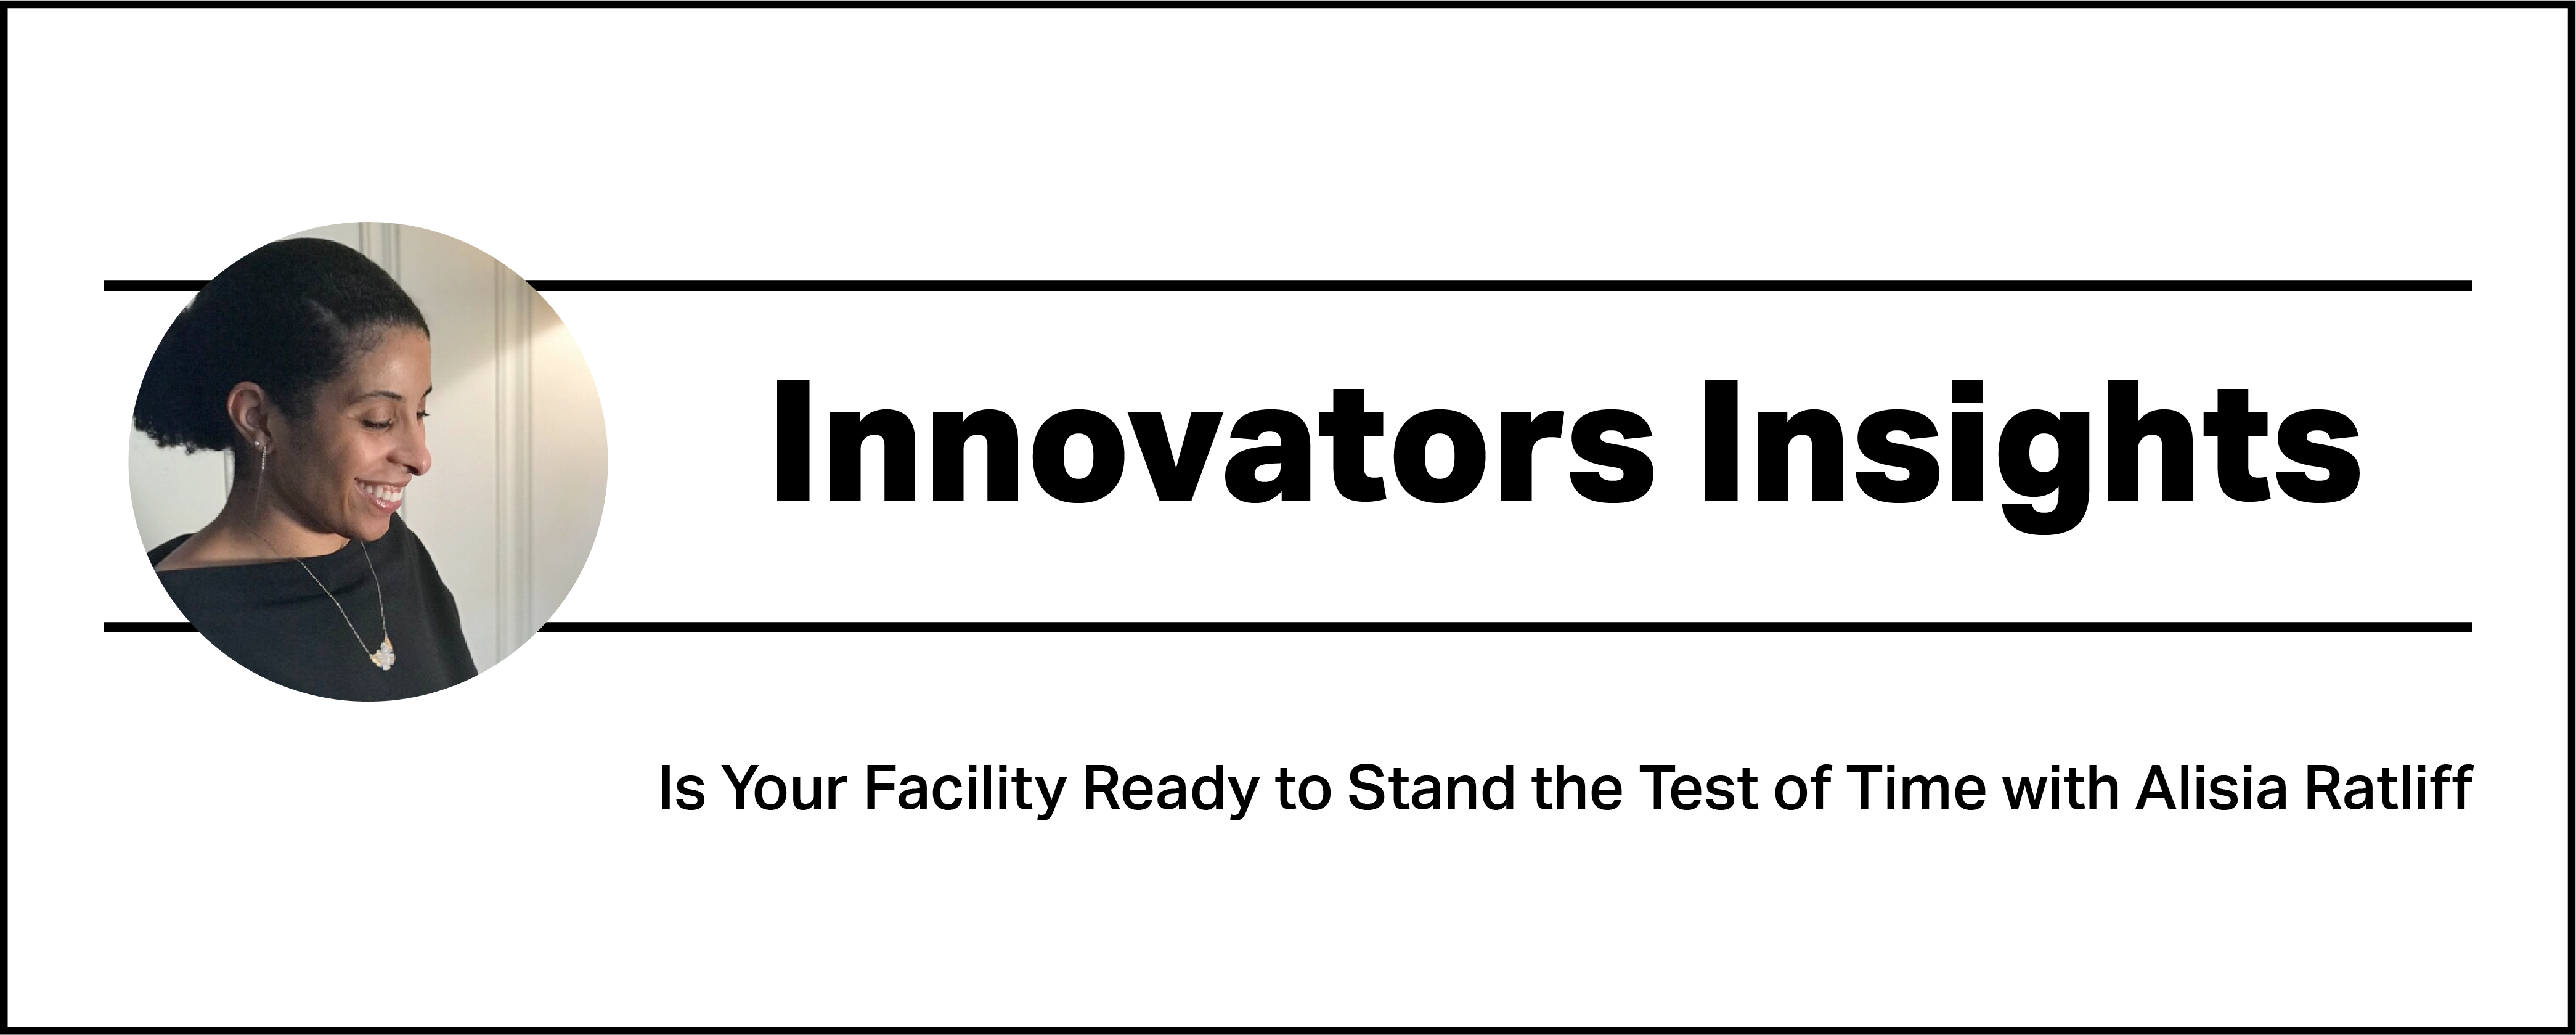 InnovatorsInsights_filled_1000x500-1.png